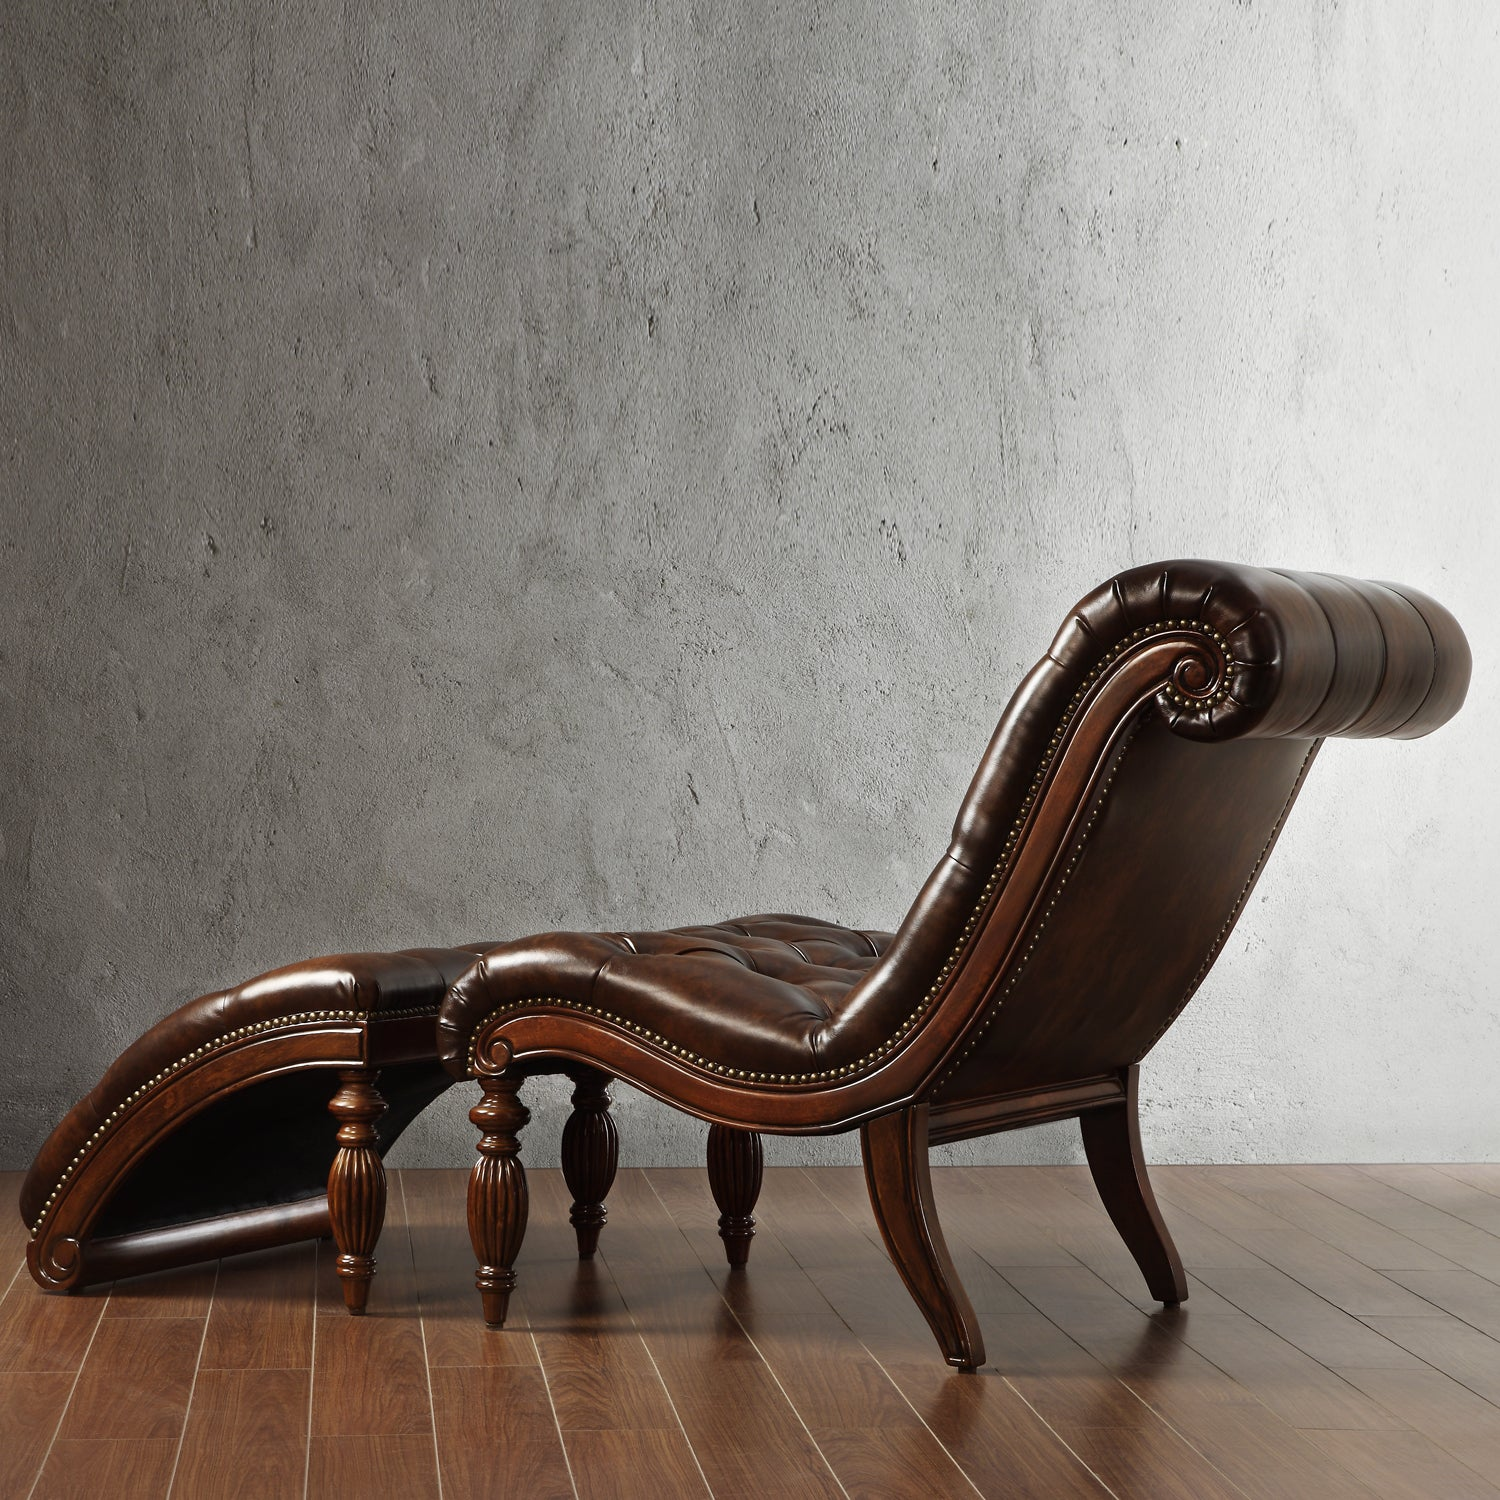 Bellagio Classic Tufted Chaise Lounge with Ottoman by iNSPIRE Q Artisan -  Free Shipping Today - Overstock.com - 13930804